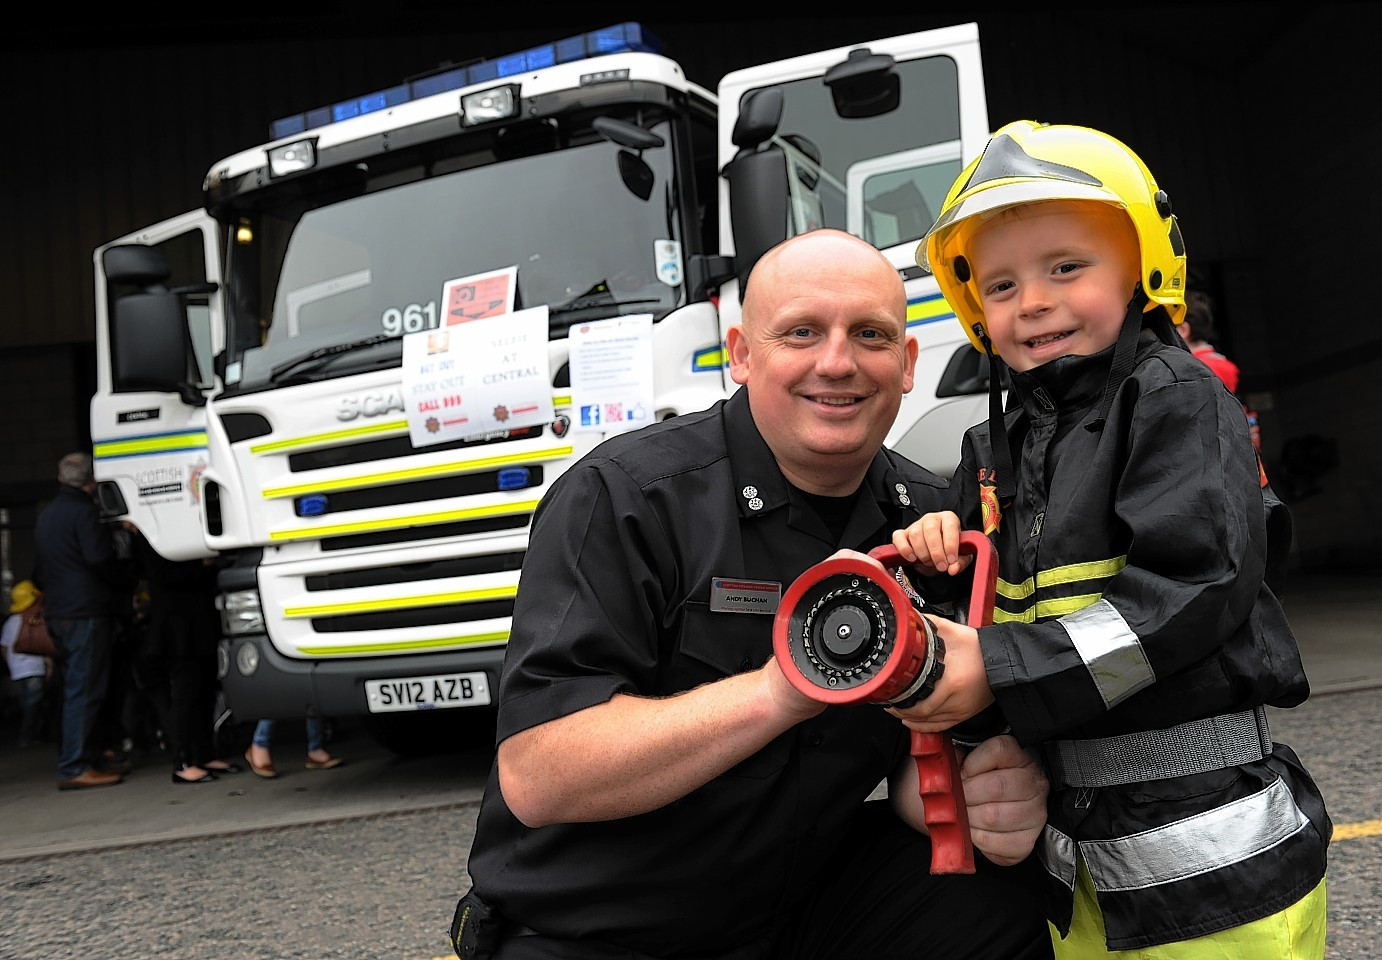 Central Fire Station Doors Open Day